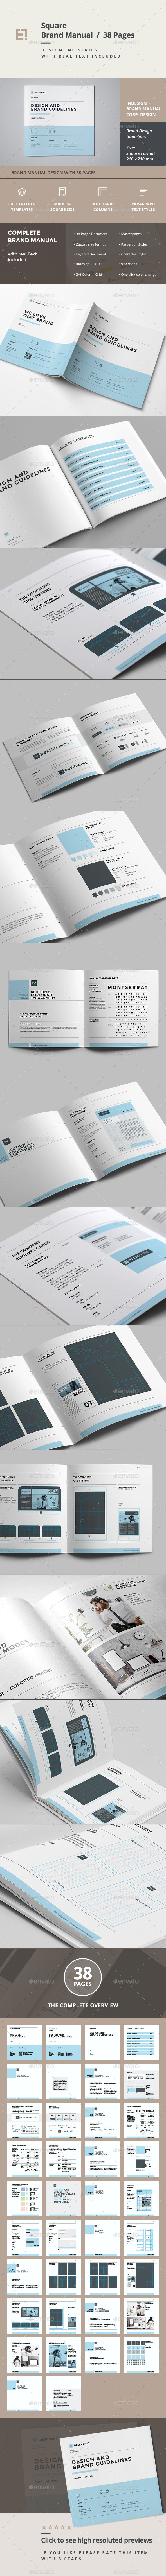 GraphicRiver Brand Manual 11423681